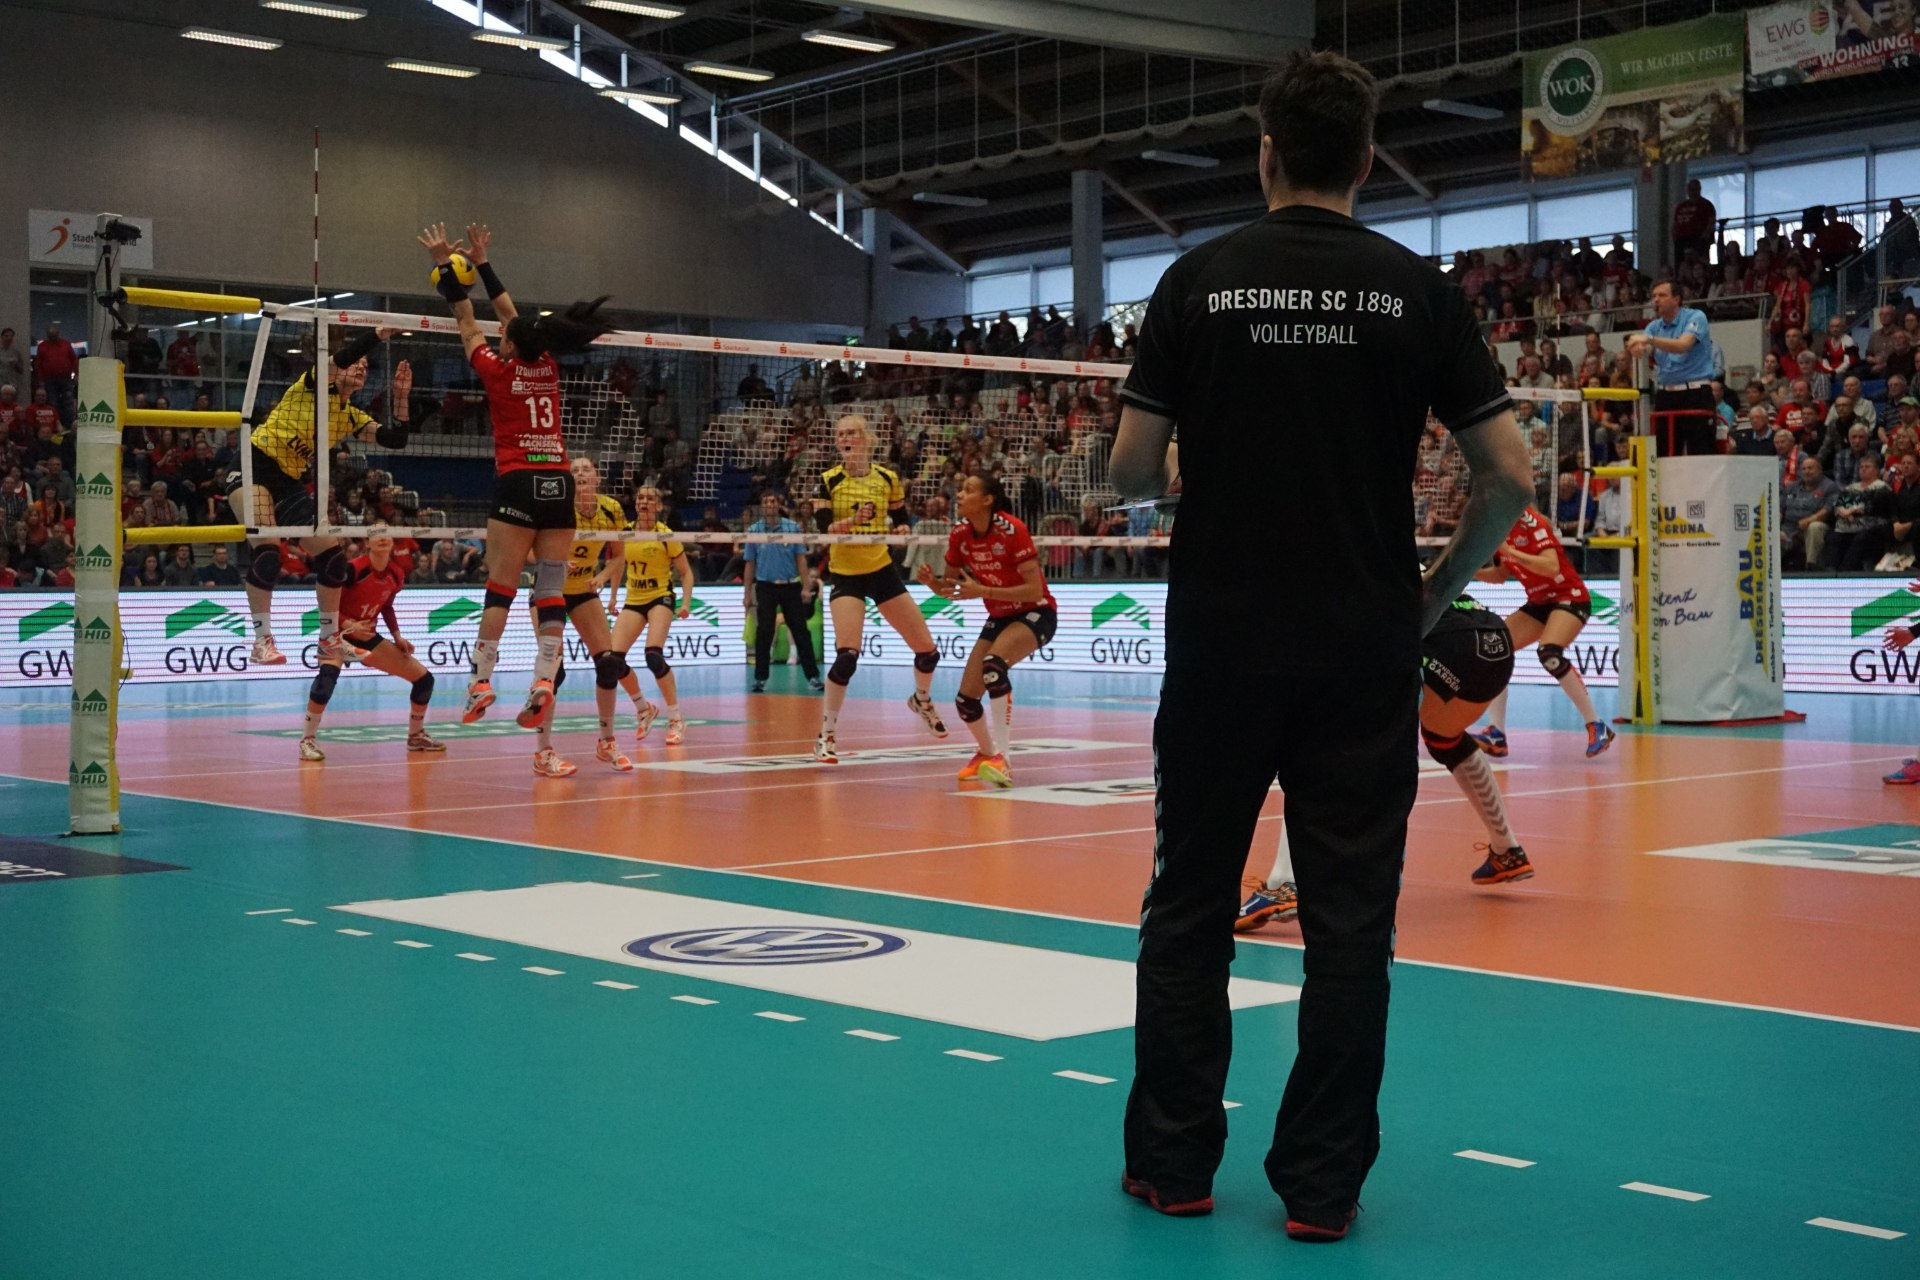 3 bundesliga volleyball